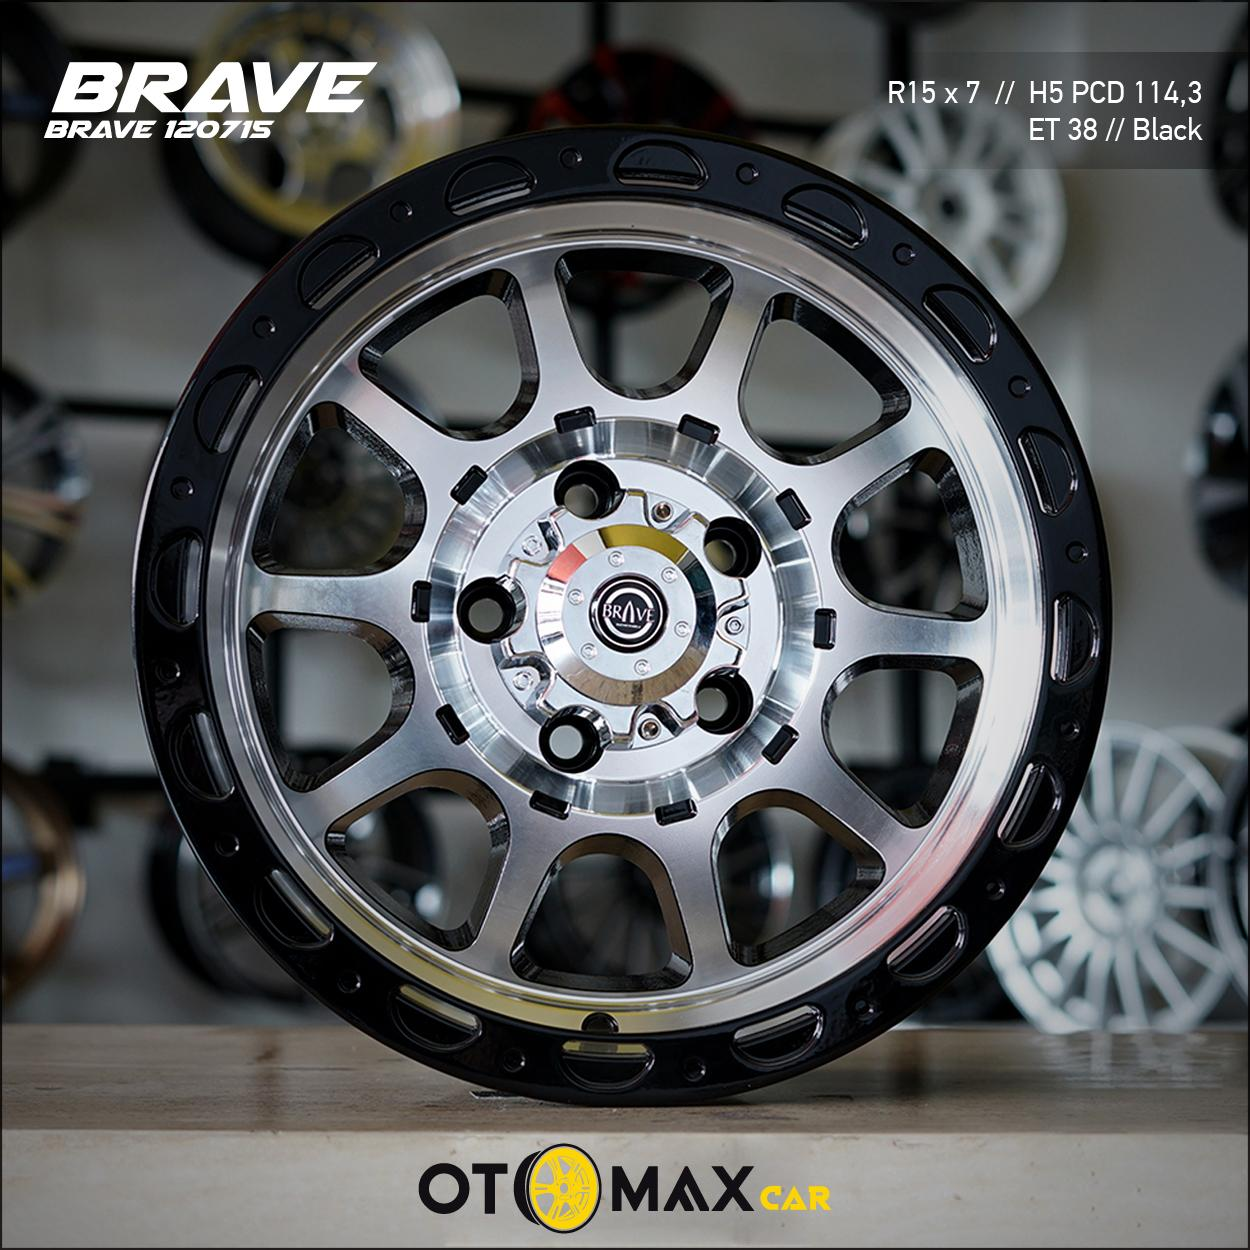 Velg Mobil Brave (120715) Ring 15 Black Polish